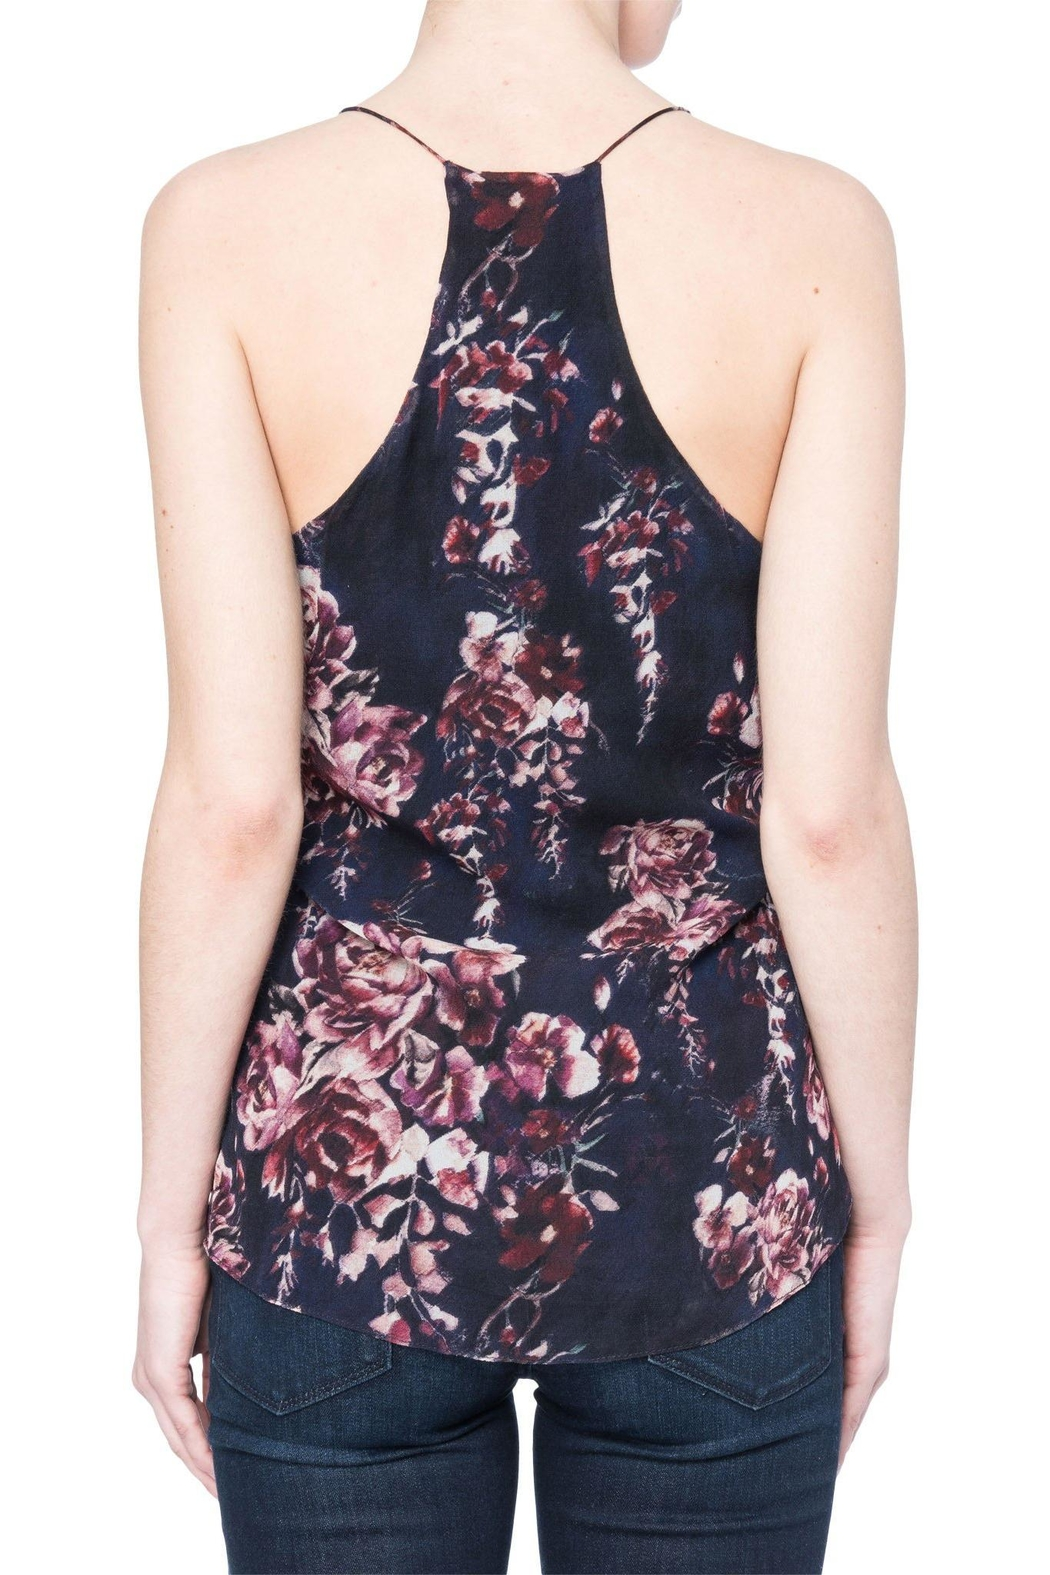 Cami NYC Floral Racerback Camisole - Front Full Image